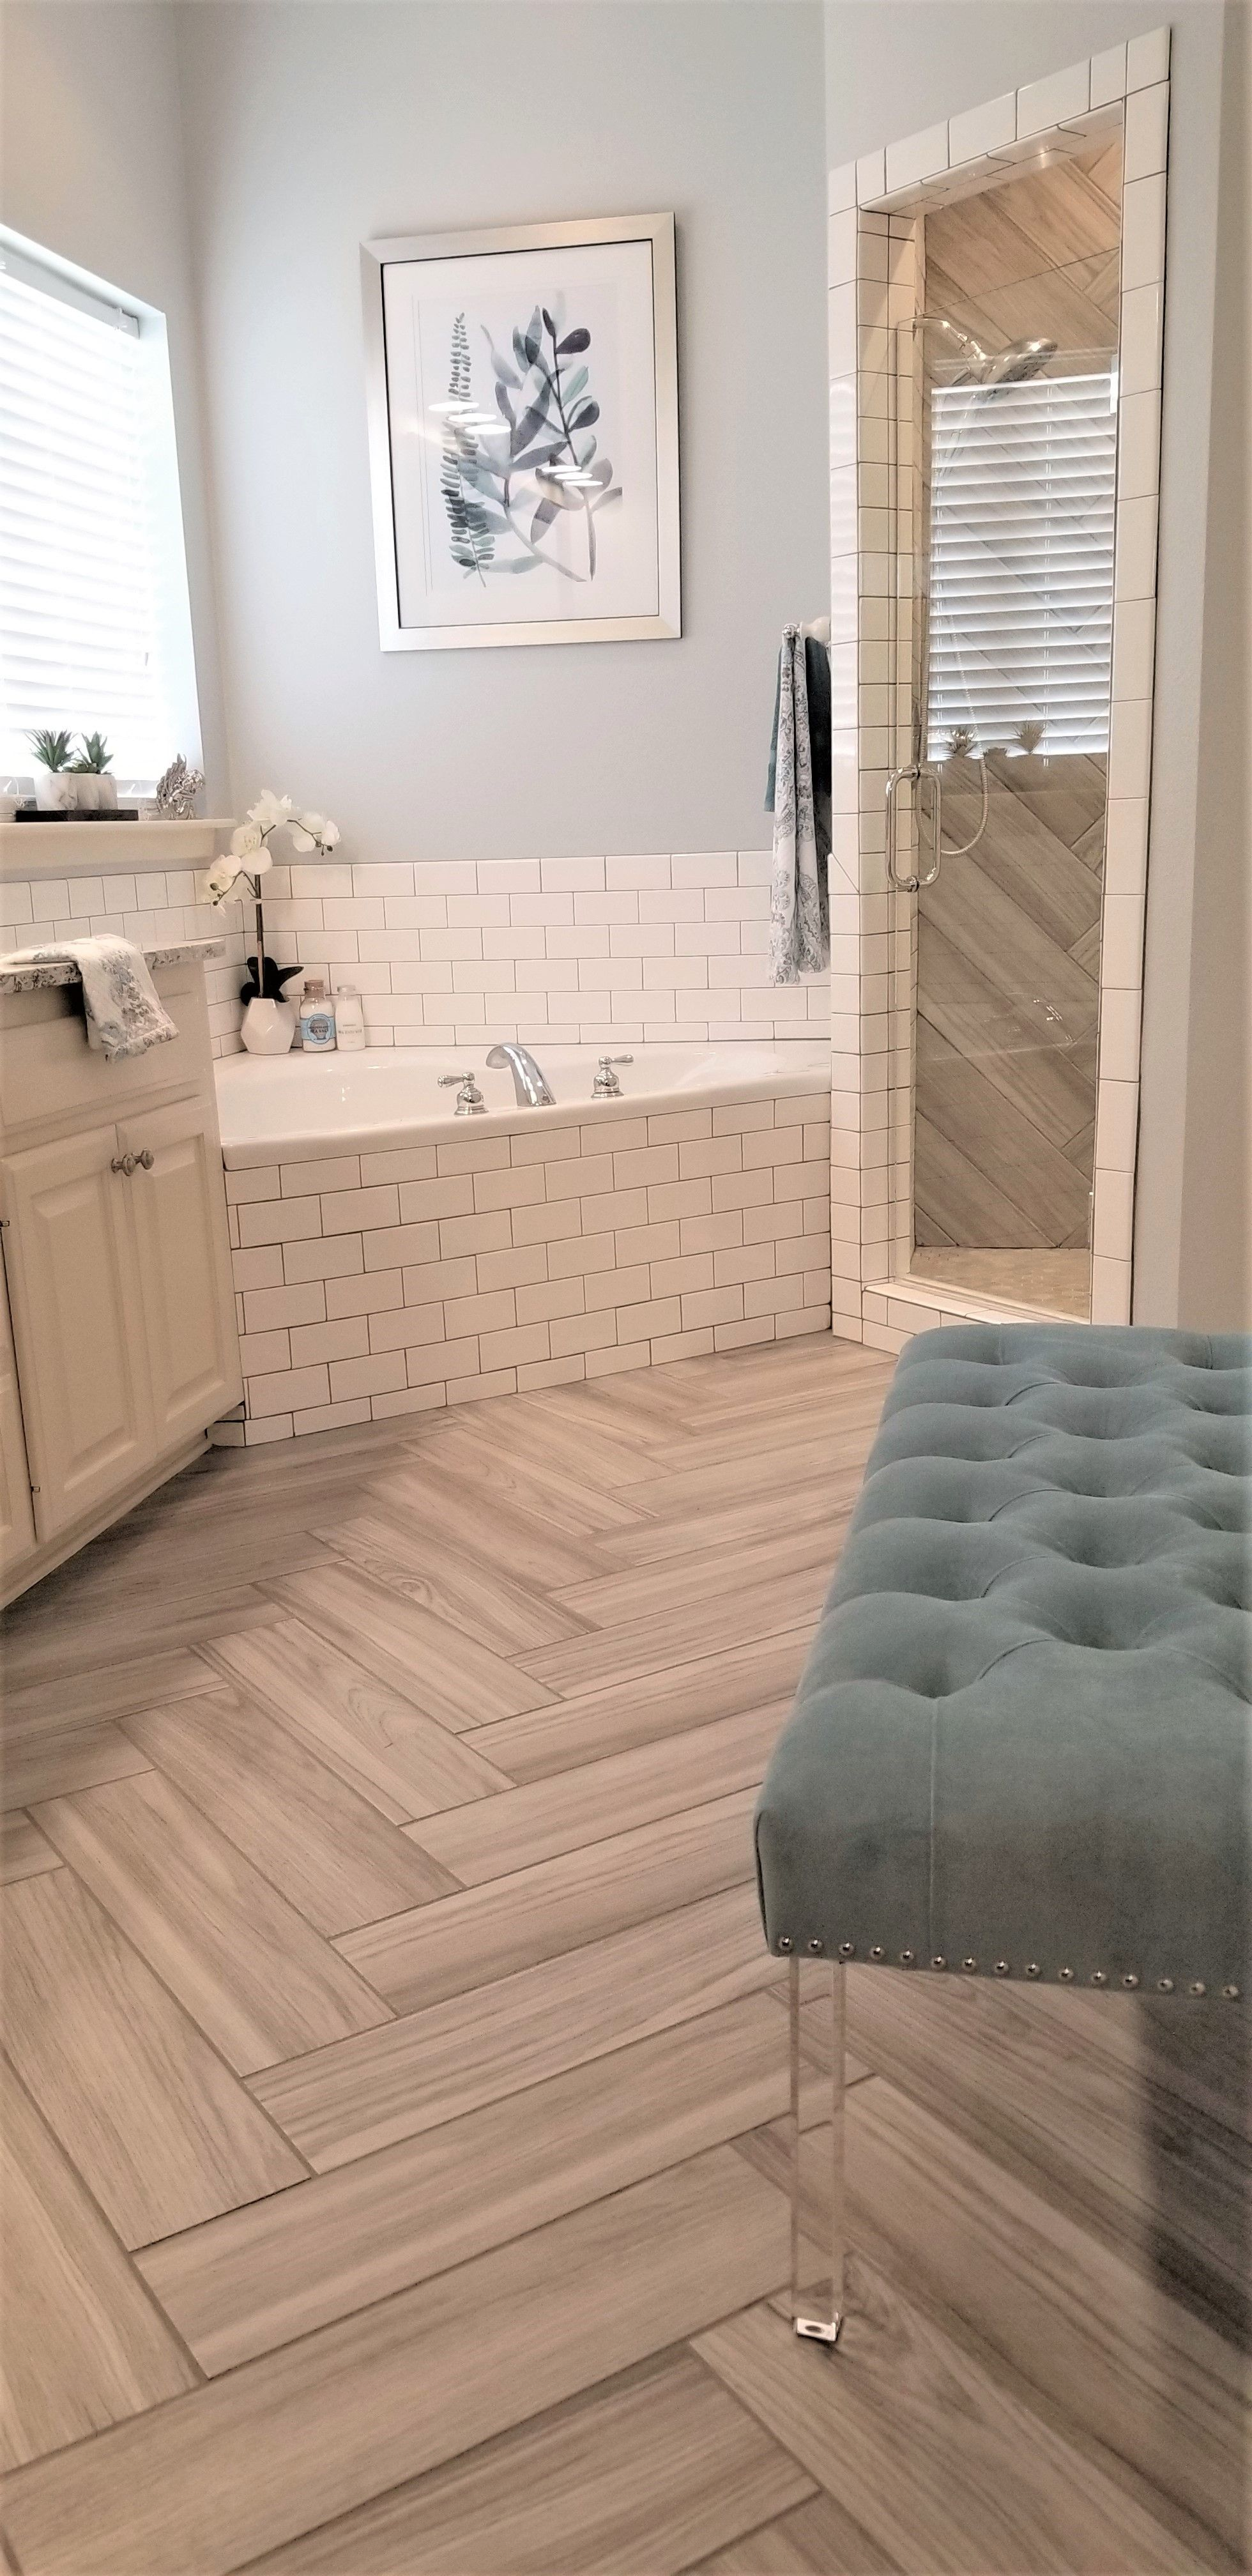 gray wood look tile laid in herringbone pattern compliments the